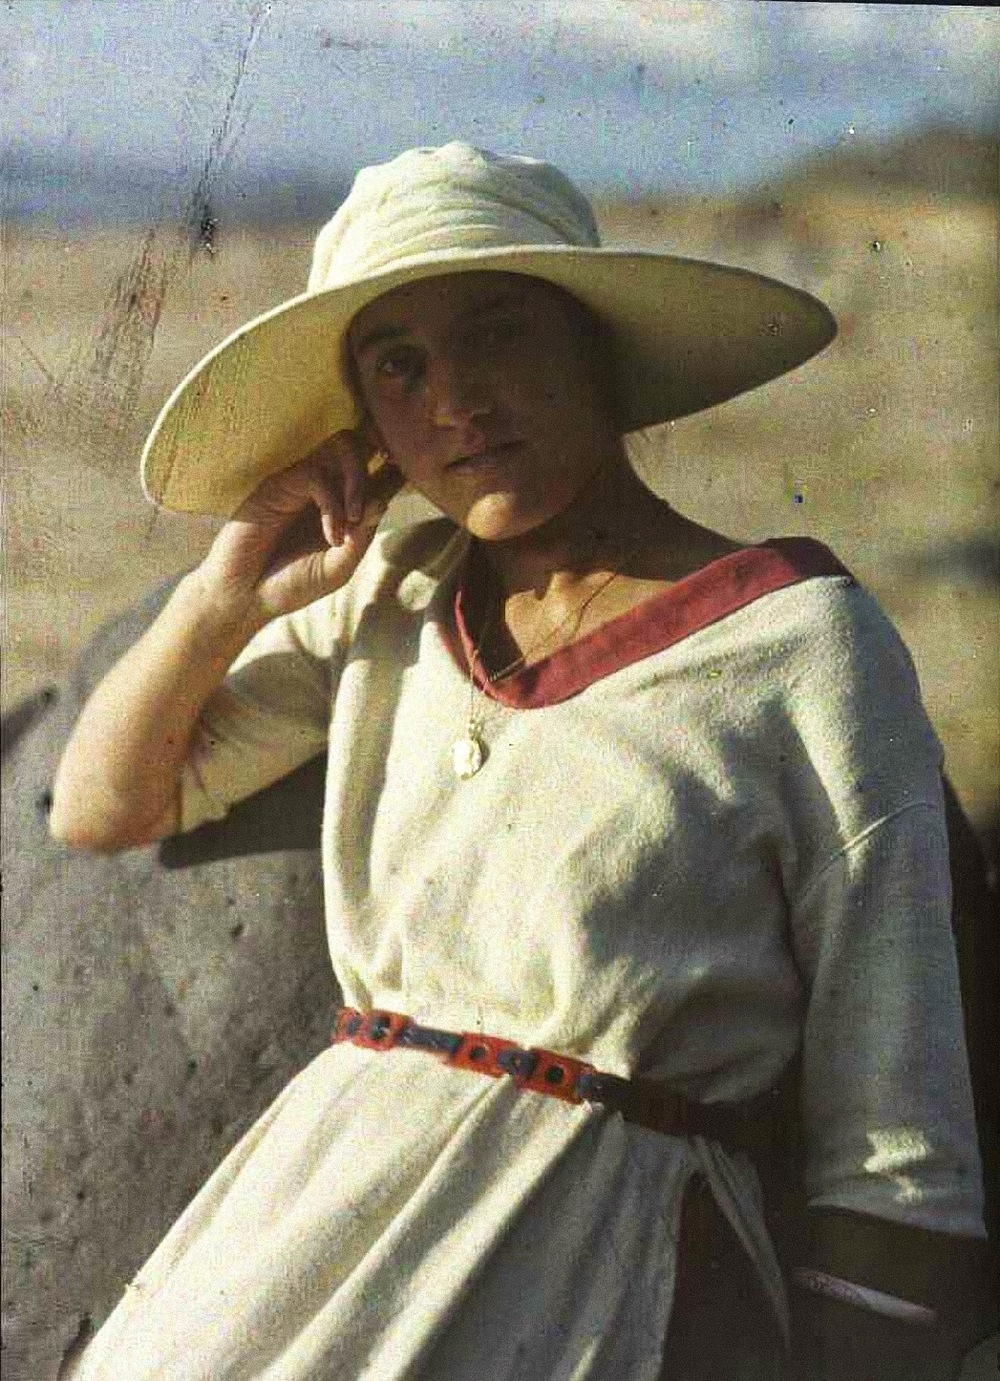 1920s_autochrome_photo_10.jpg